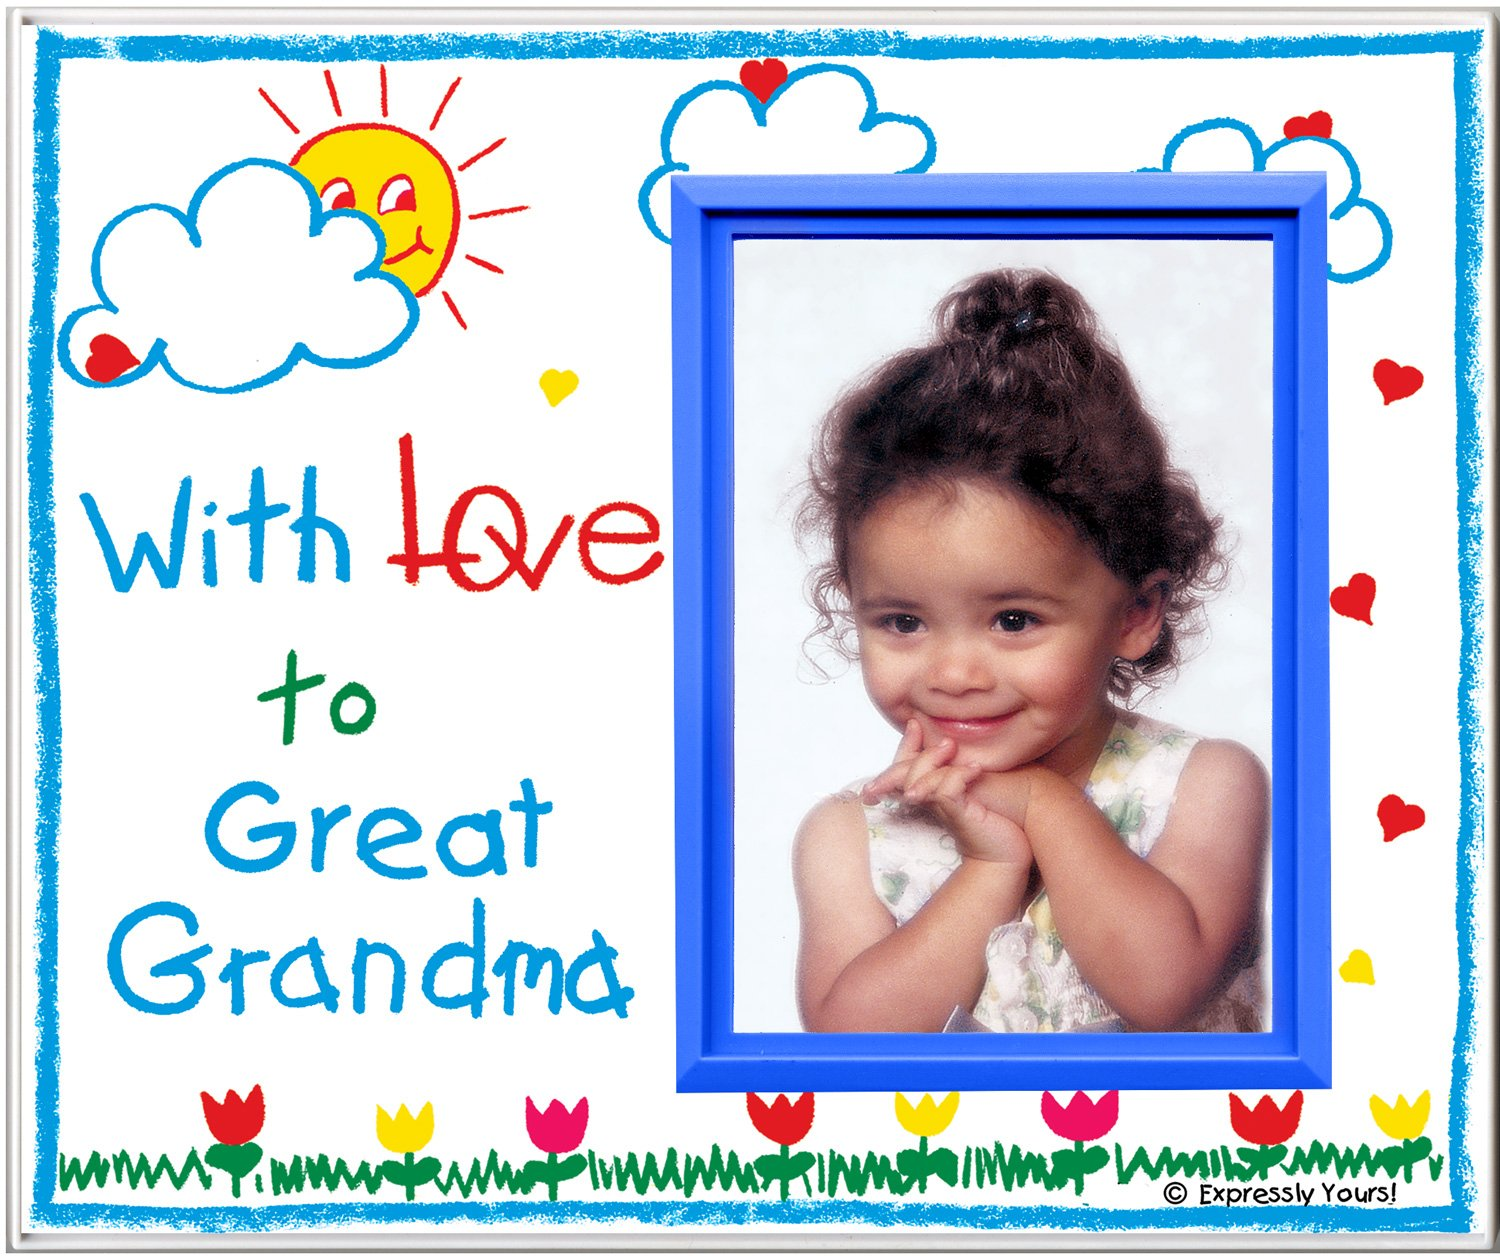 Amazon.com : With Love to Grandma - Picture Frame Gift : Childrens ...